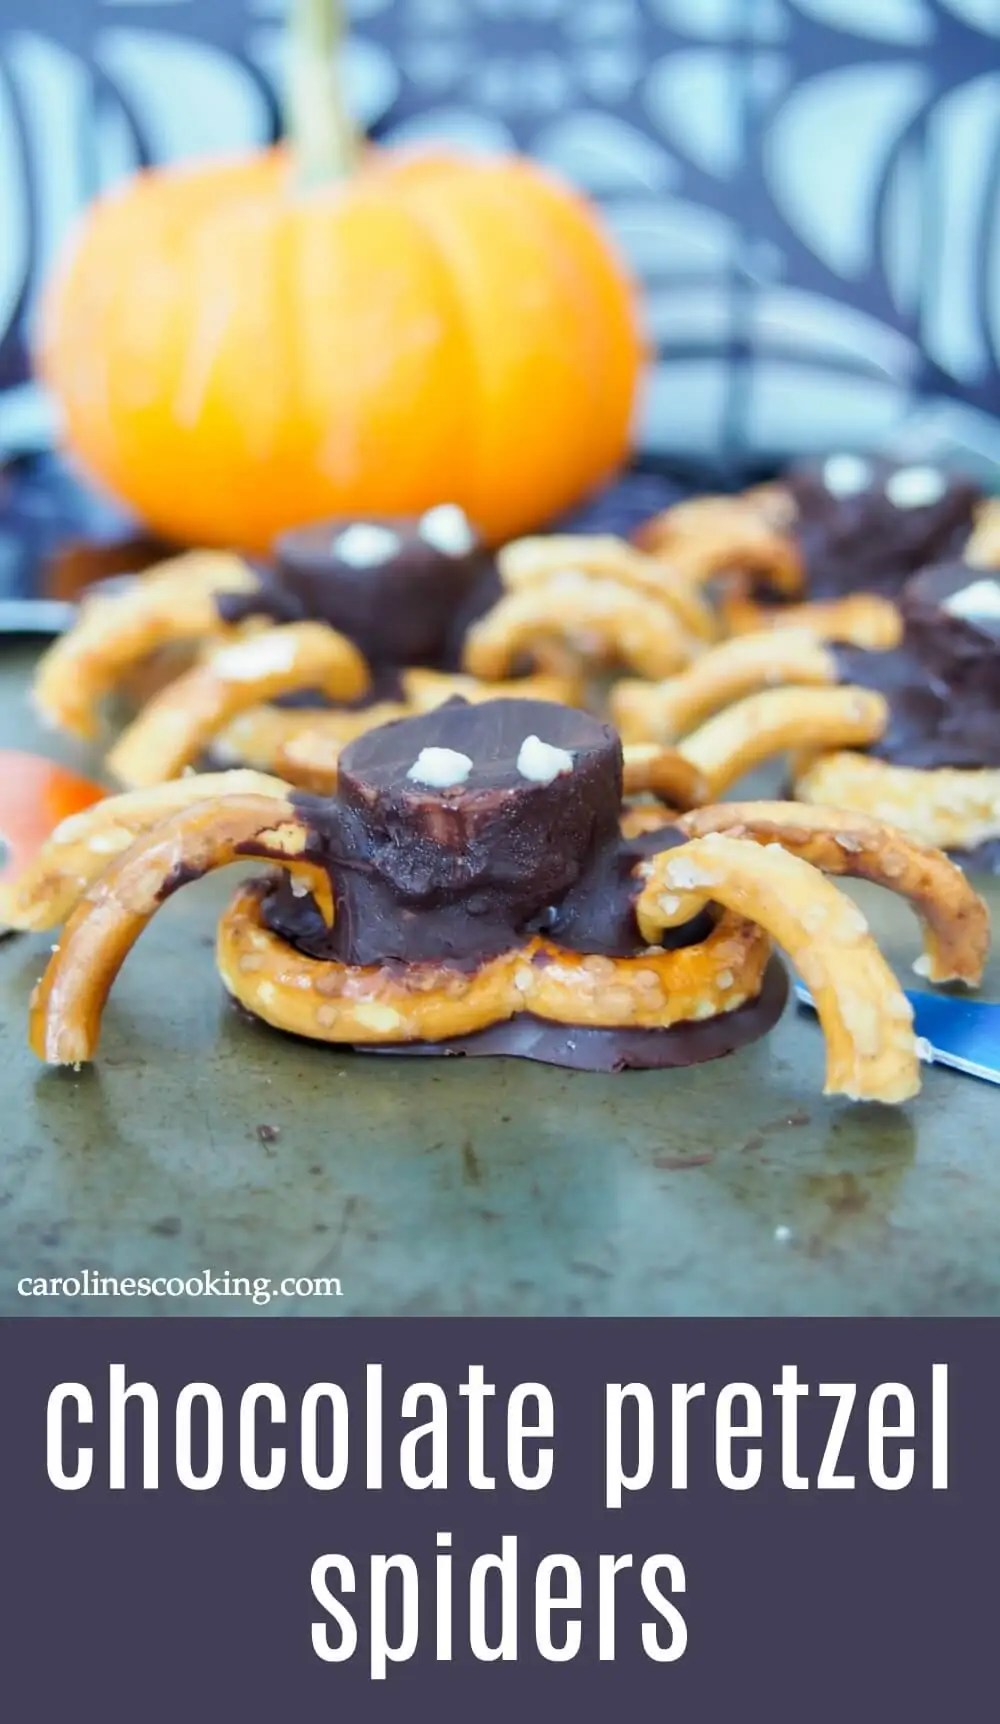 These chocolate pretzel spiders are the perfect fun snack for your next Halloween party! Easy enough for the kids to help make and a tasty sweet-salty mix.#halloween #pretzelspider #halloweensnack